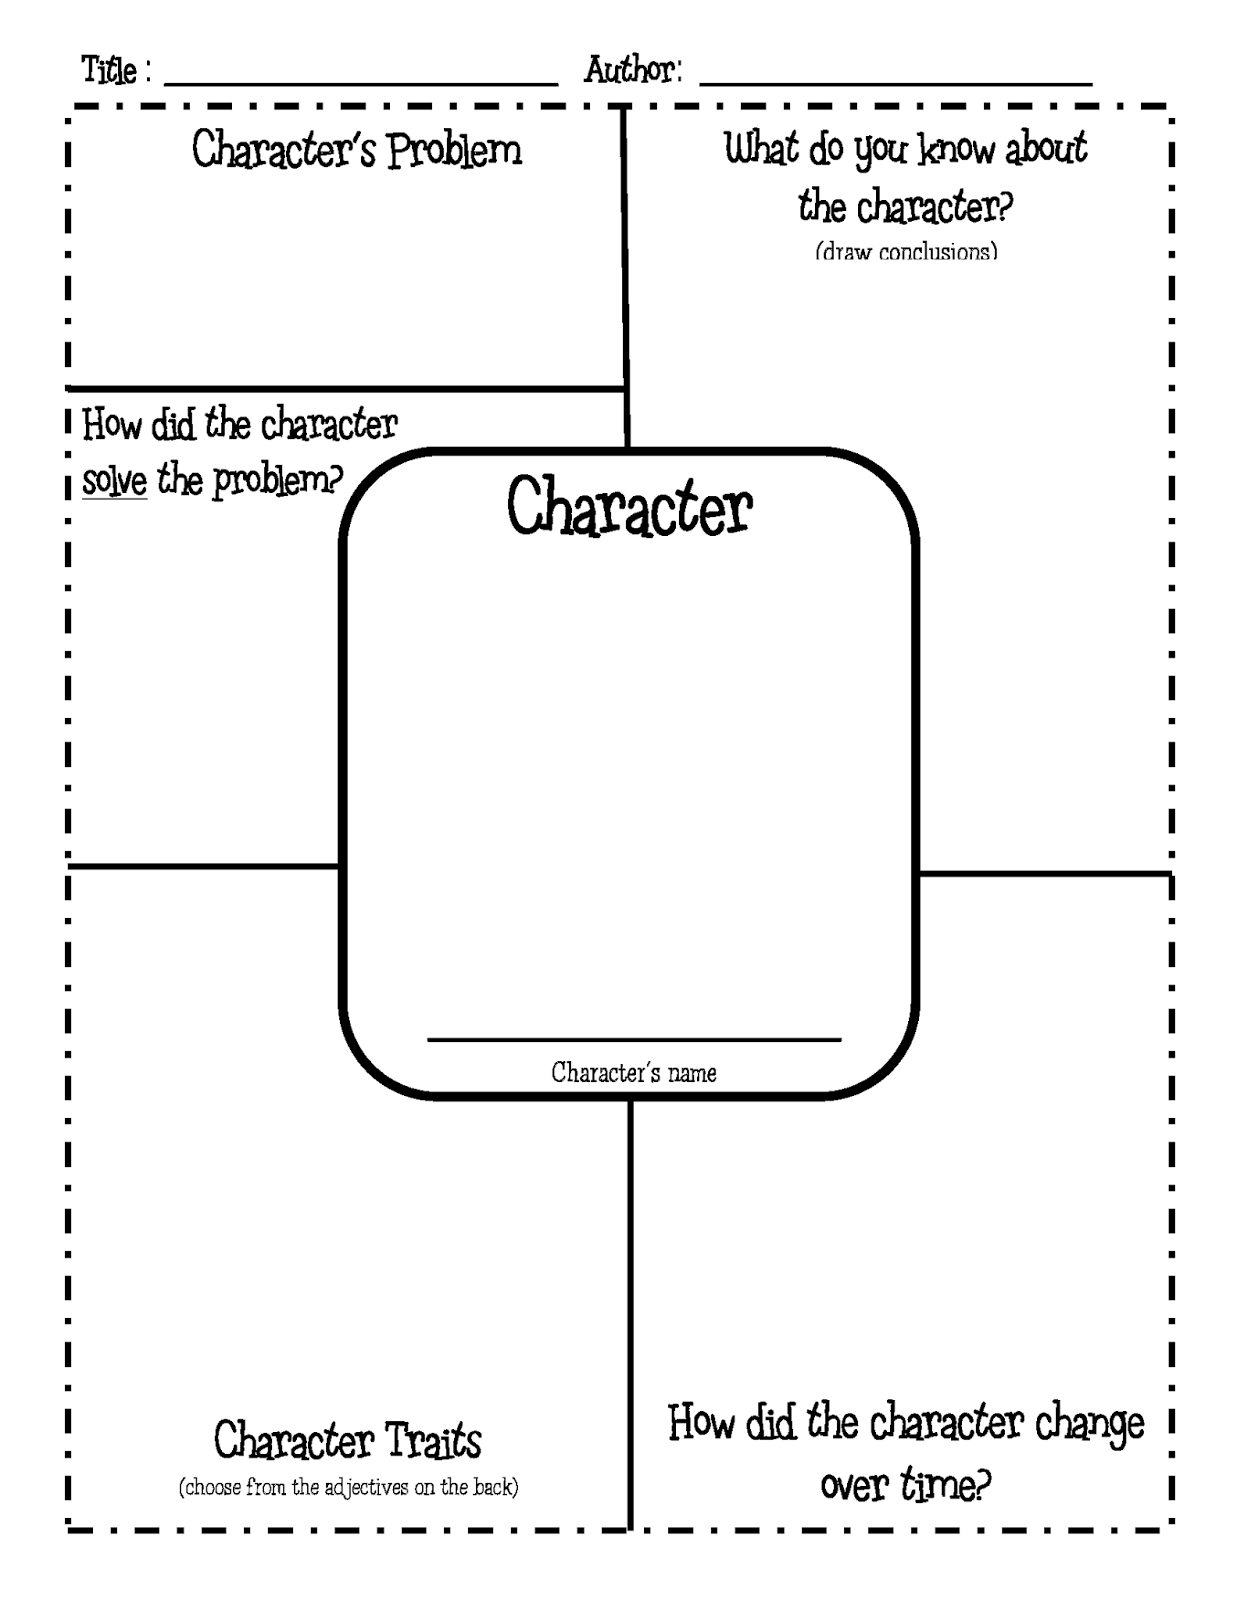 Mrs quimby reads february 2015 graphic organizer templates word mrs quimby reads february 2015 graphic organizer templates word maxwellsz